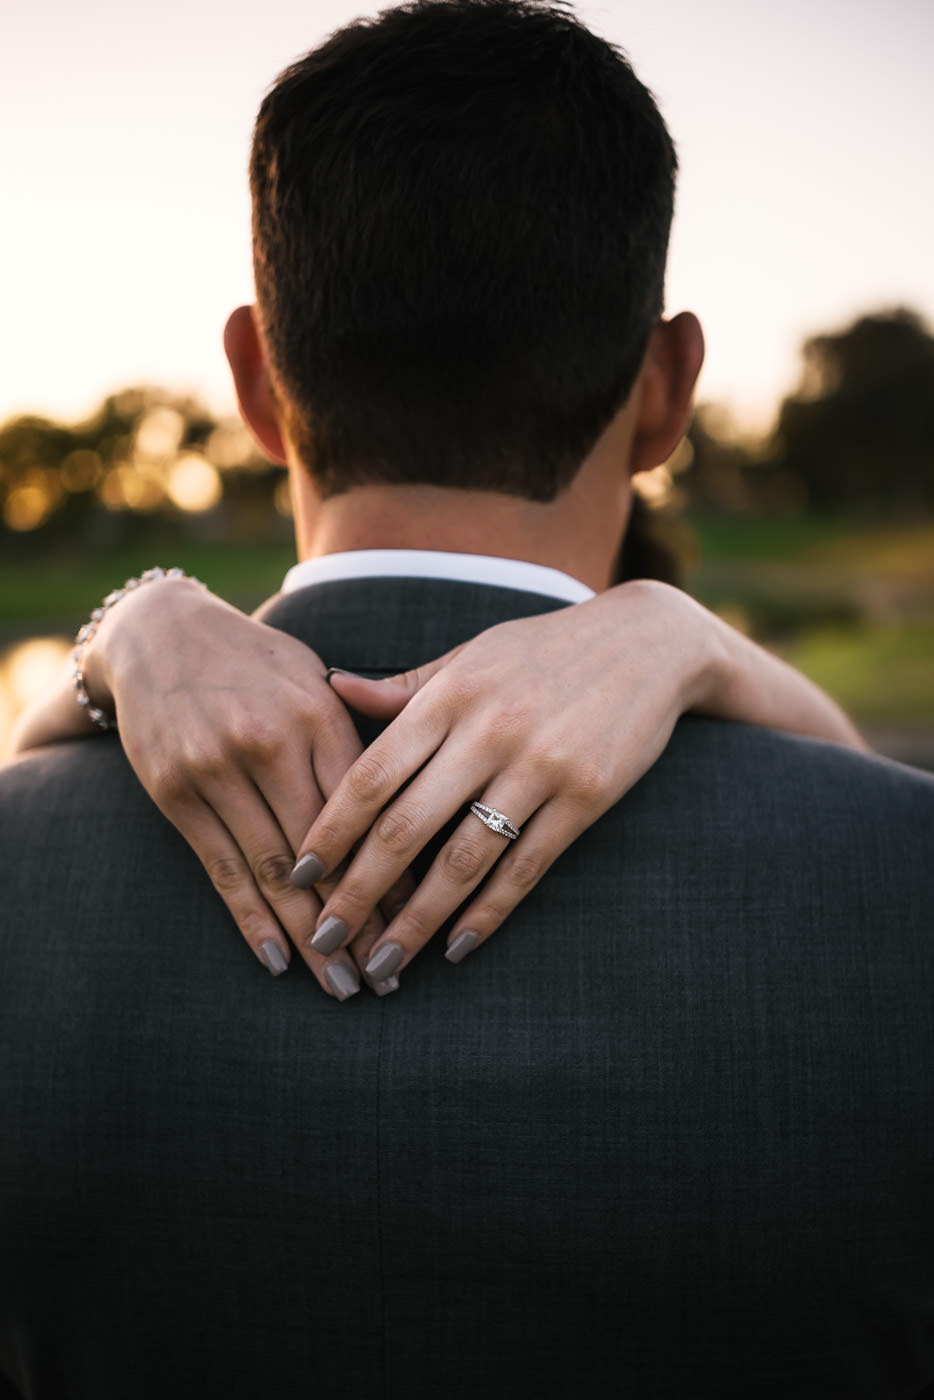 Bride shows off her stunning wedding ring and chic grey nails.